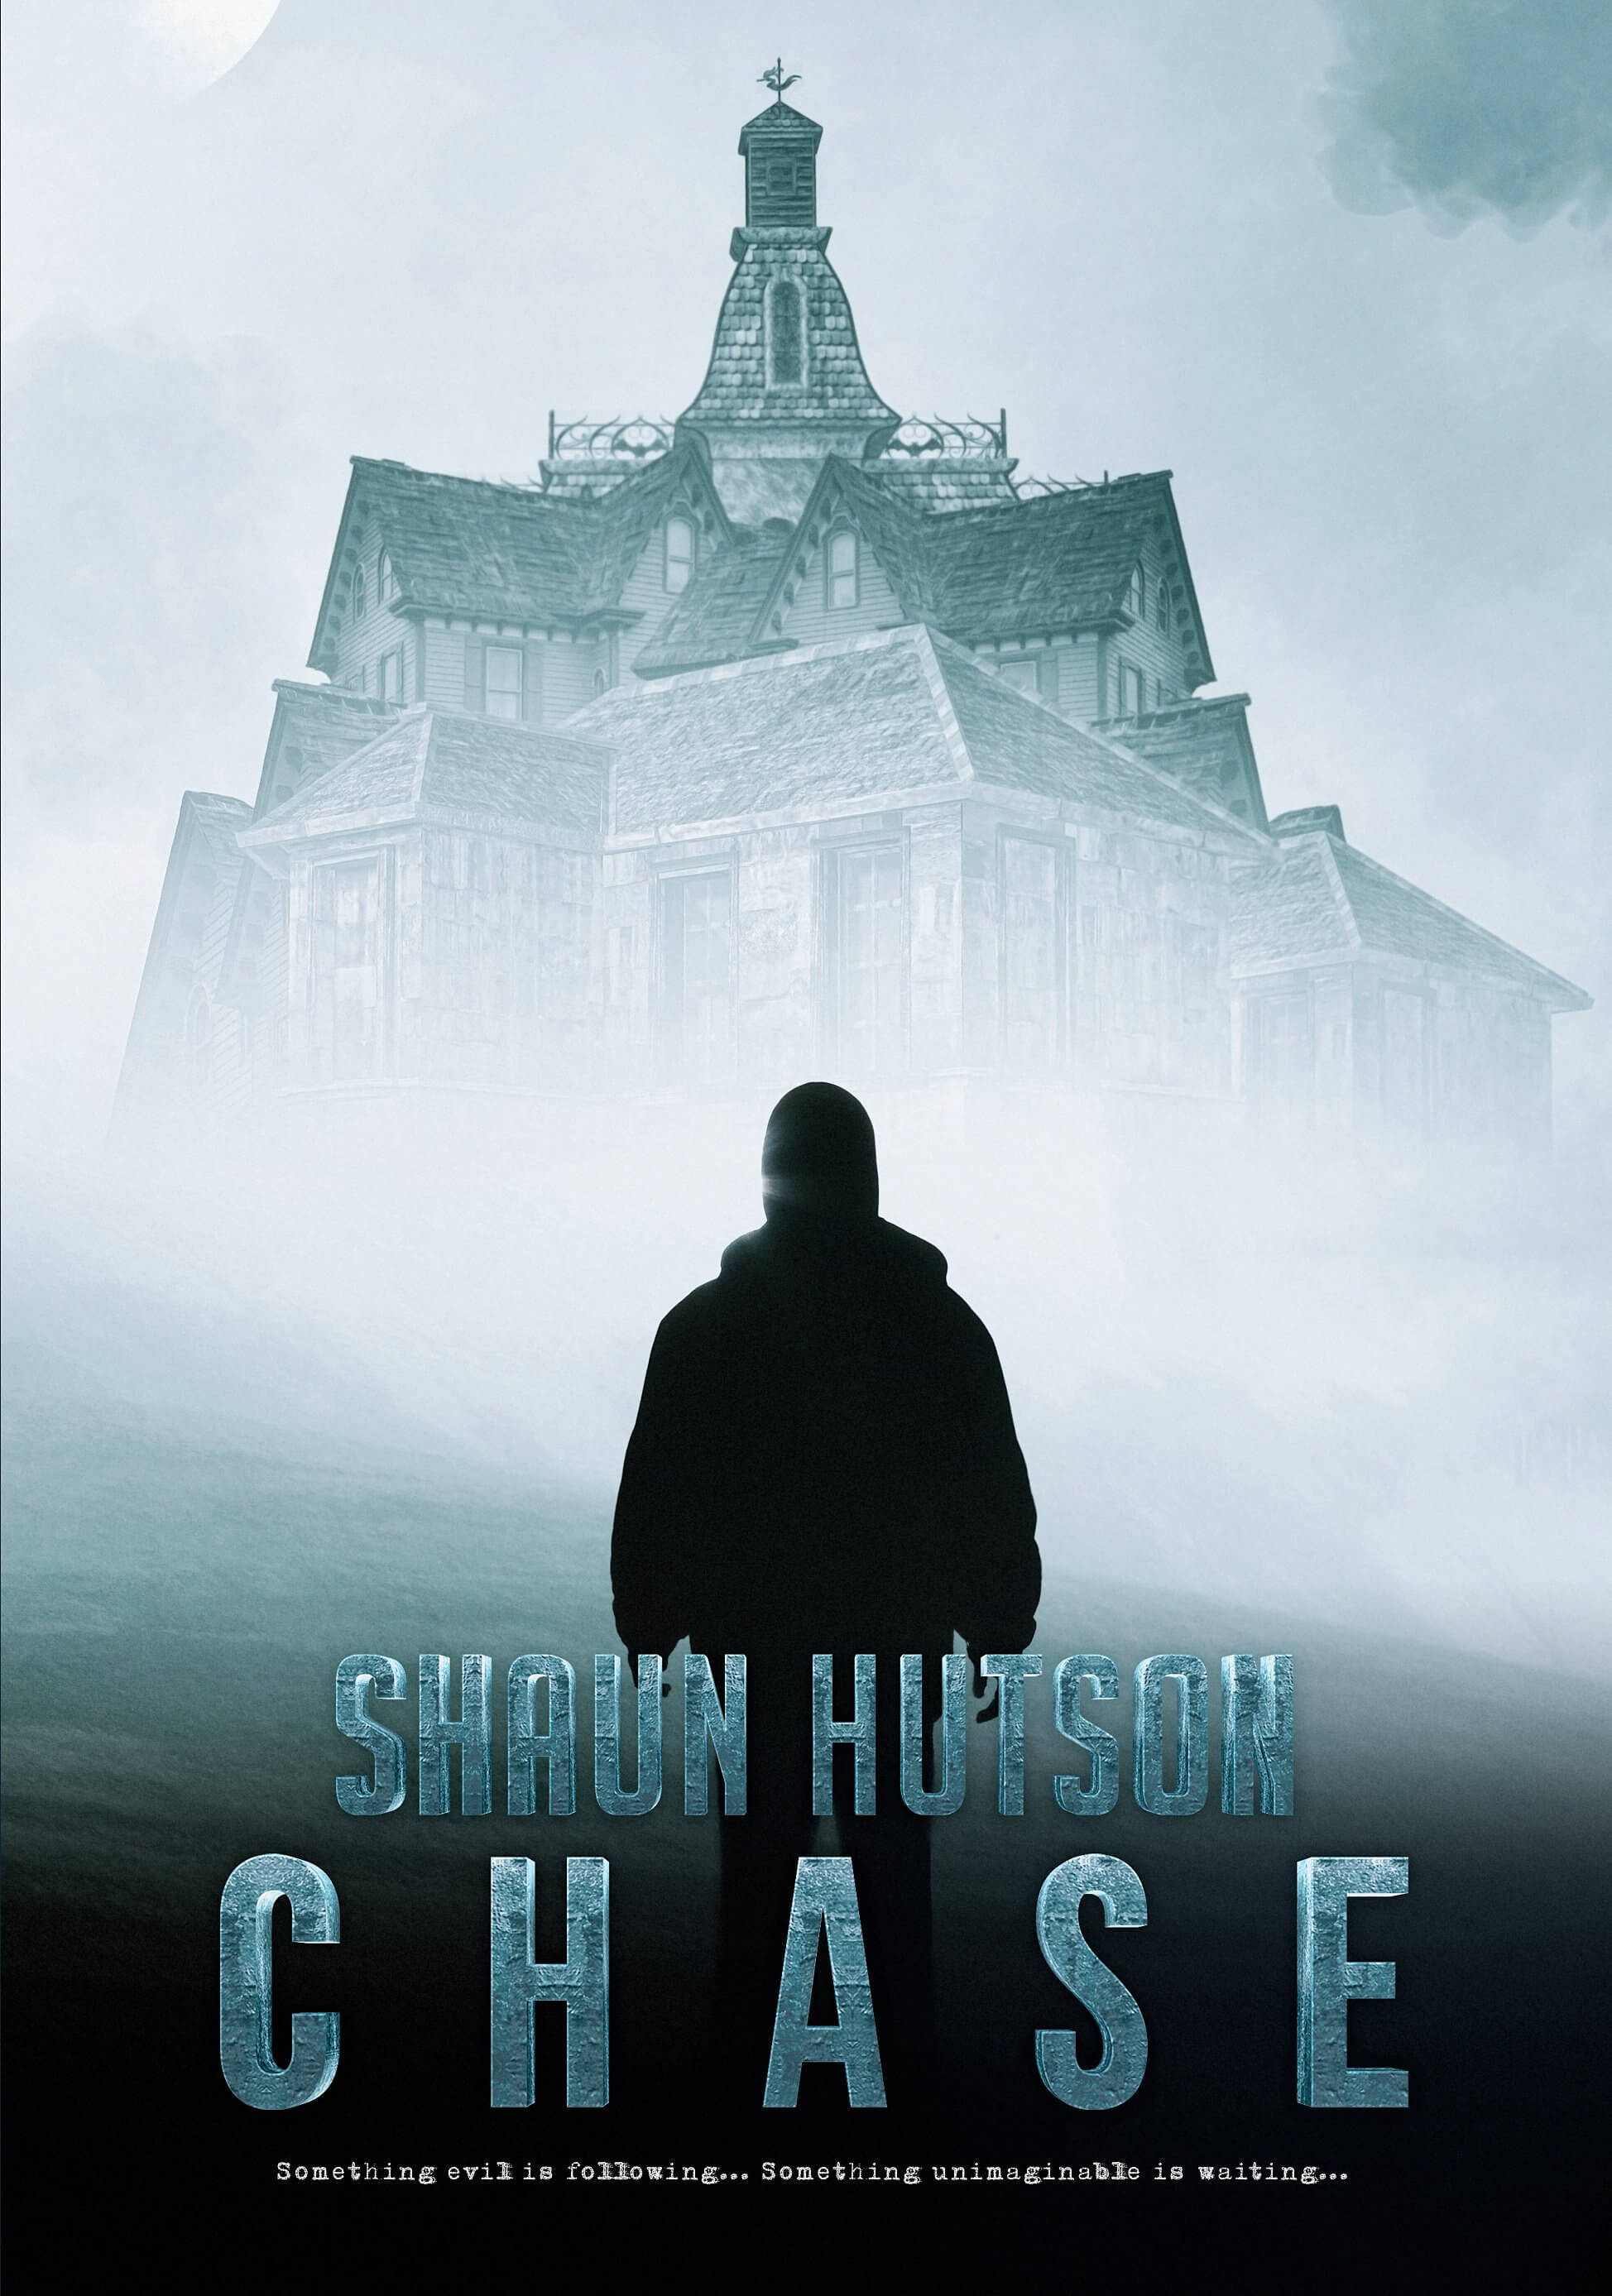 shaun hutson chase 1 - Exclusive: Bestselling Horror Author Shaun Hutson Talks Us Through His Career